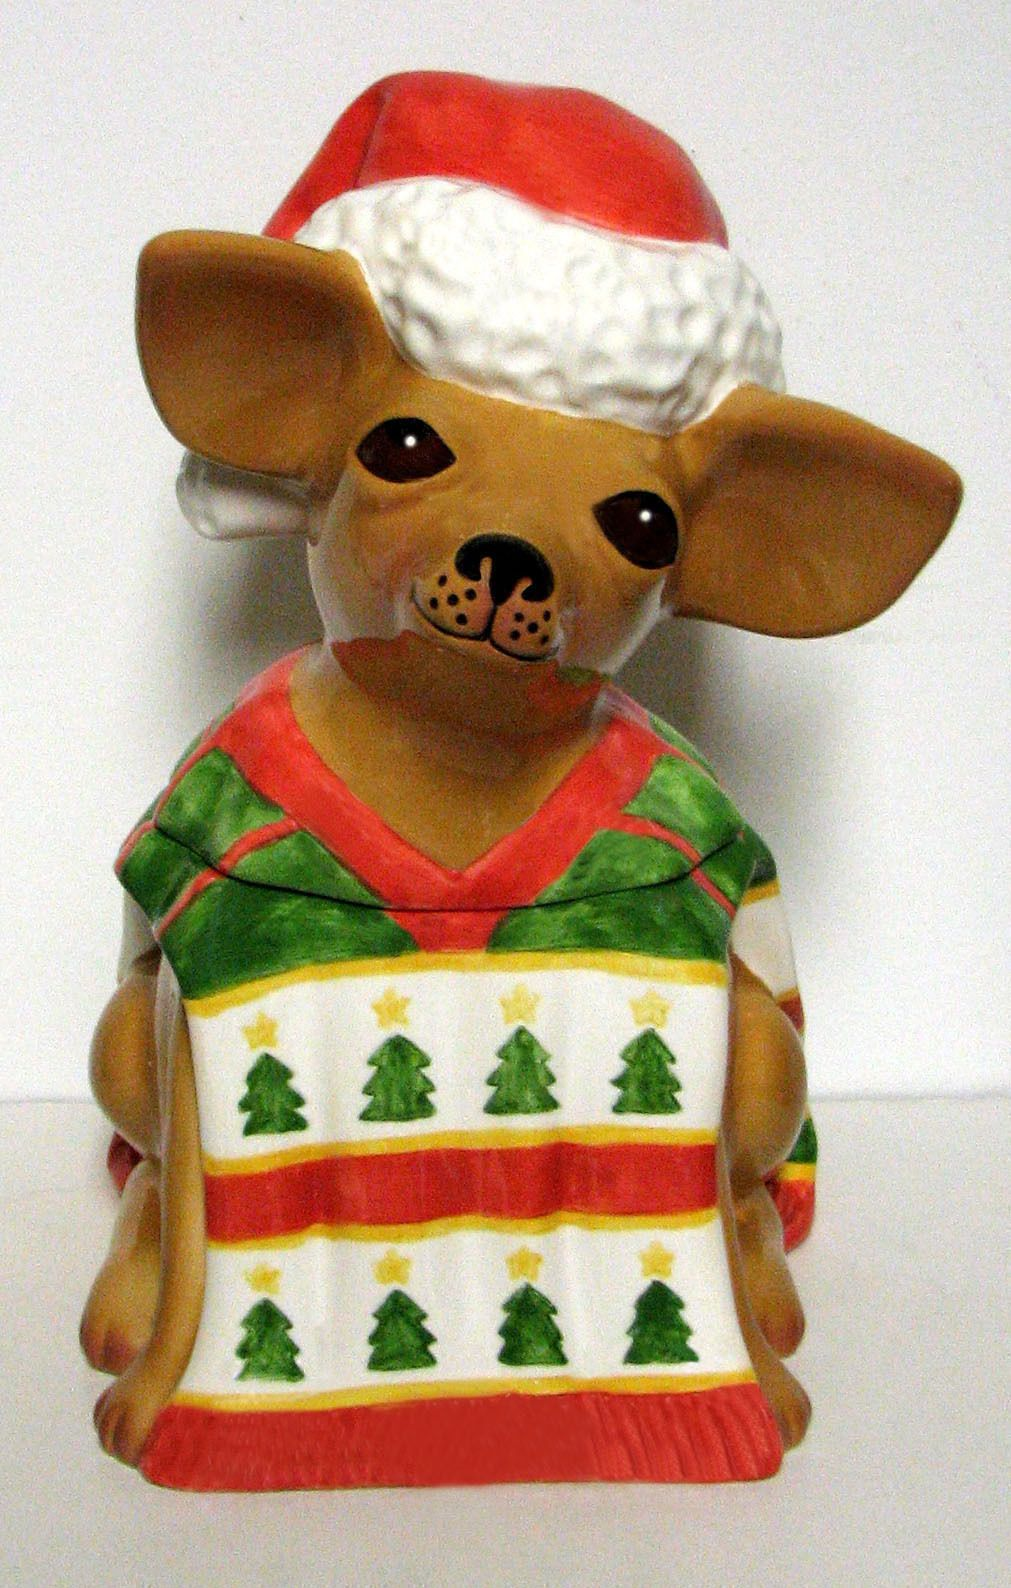 Chihuahua Cookie Jar Interesting Rare Santa Chihuahua Clay Art Cookie Jar  Cookie Jars Jar And Santa Decorating Inspiration